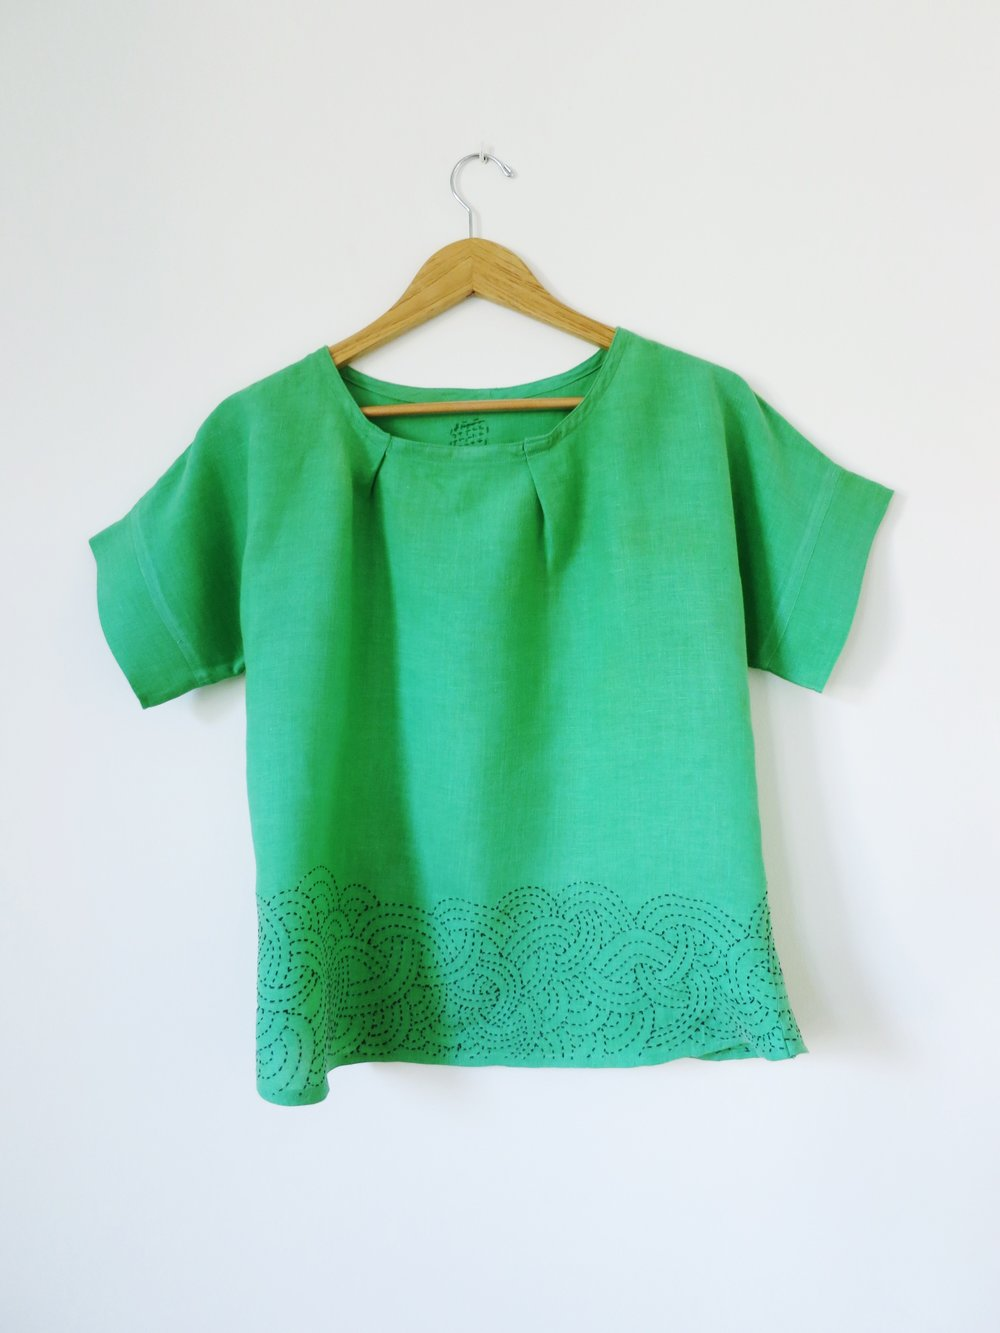 Modified Maya Top with embrodery around the hem